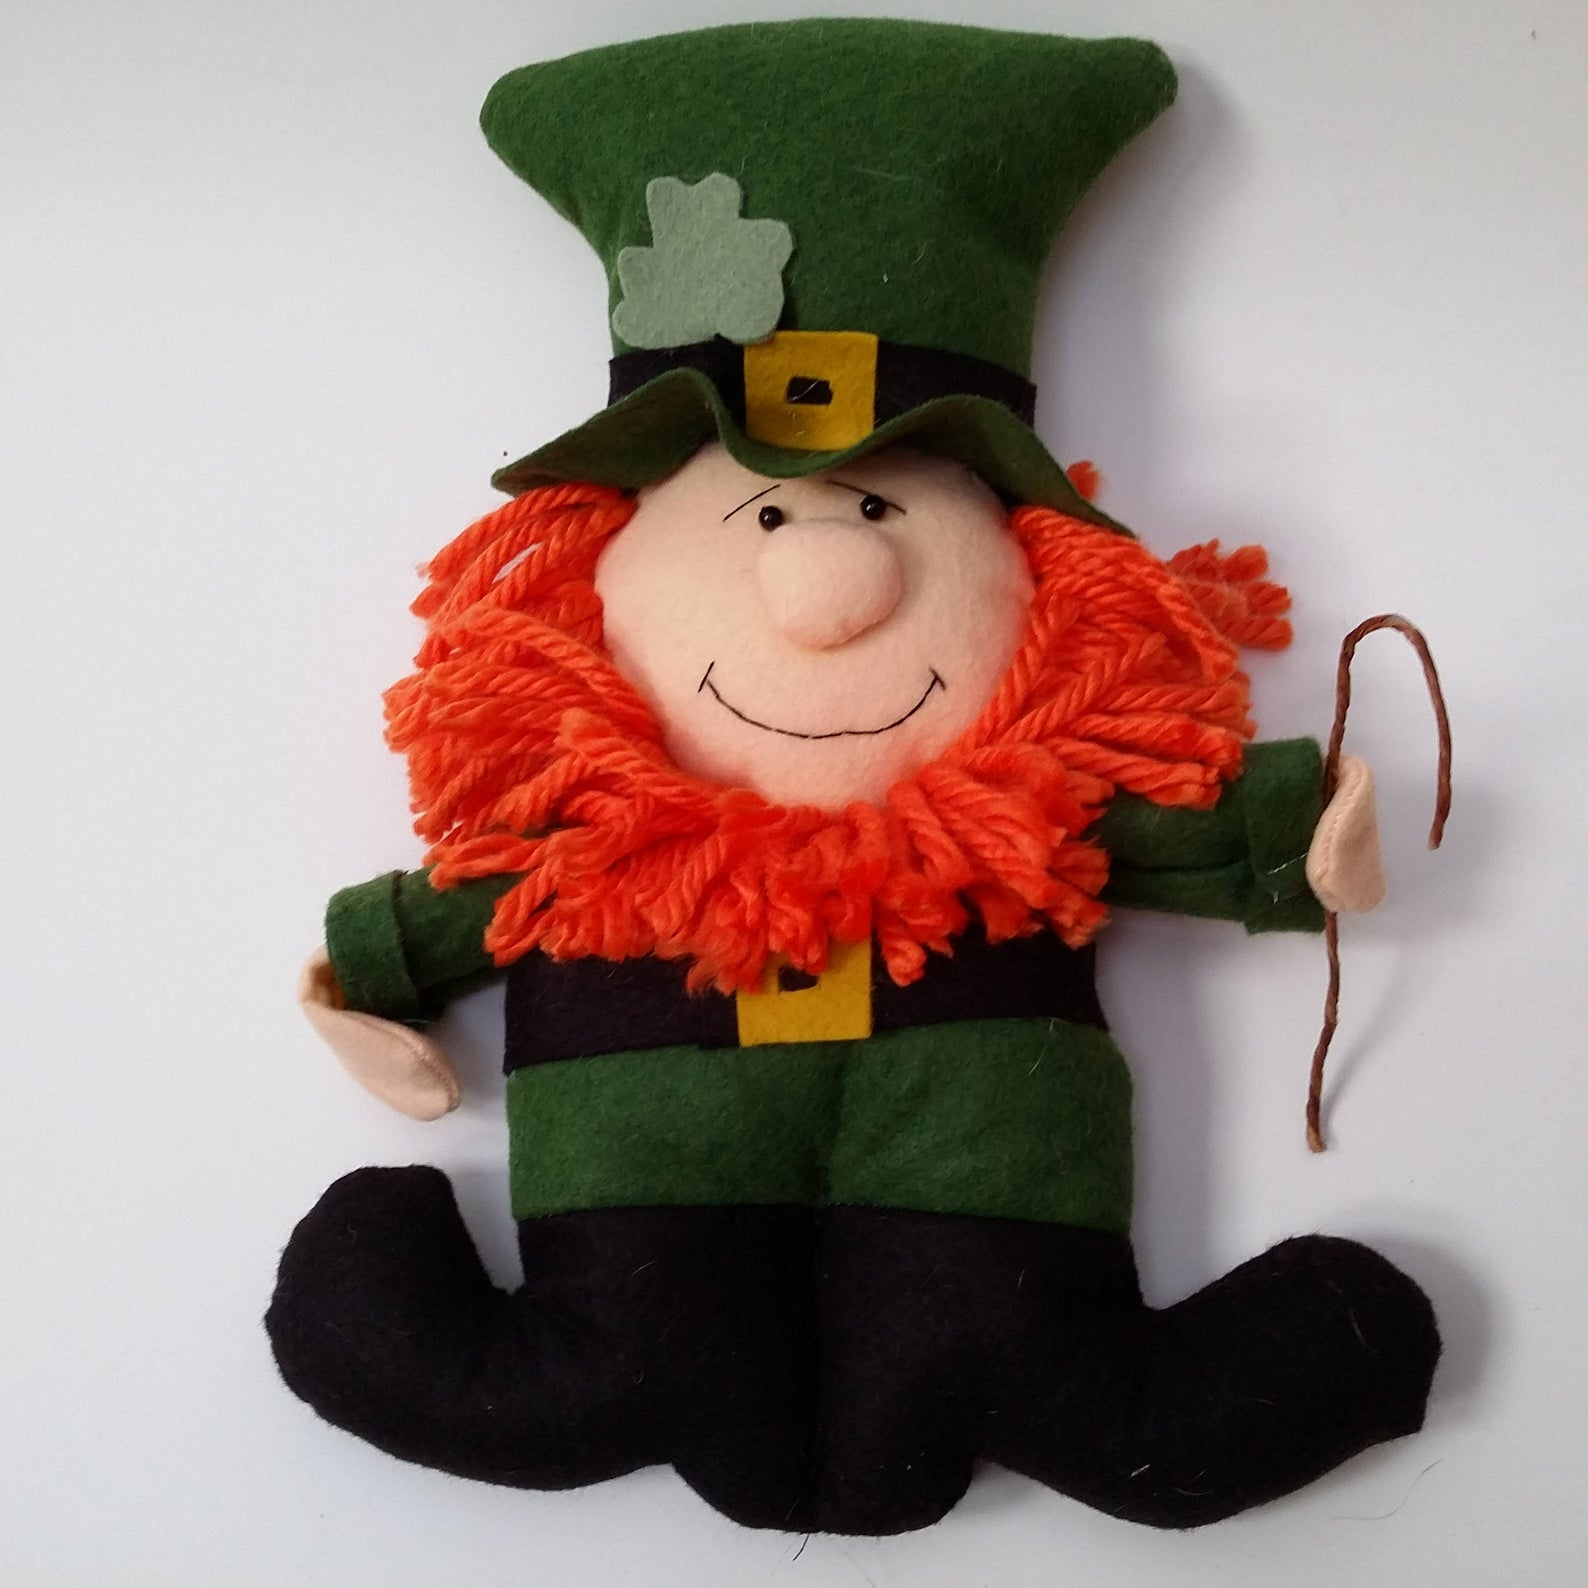 Decoration ideas for St. Patrick & # 39; s Day - Leprechaun plush toy